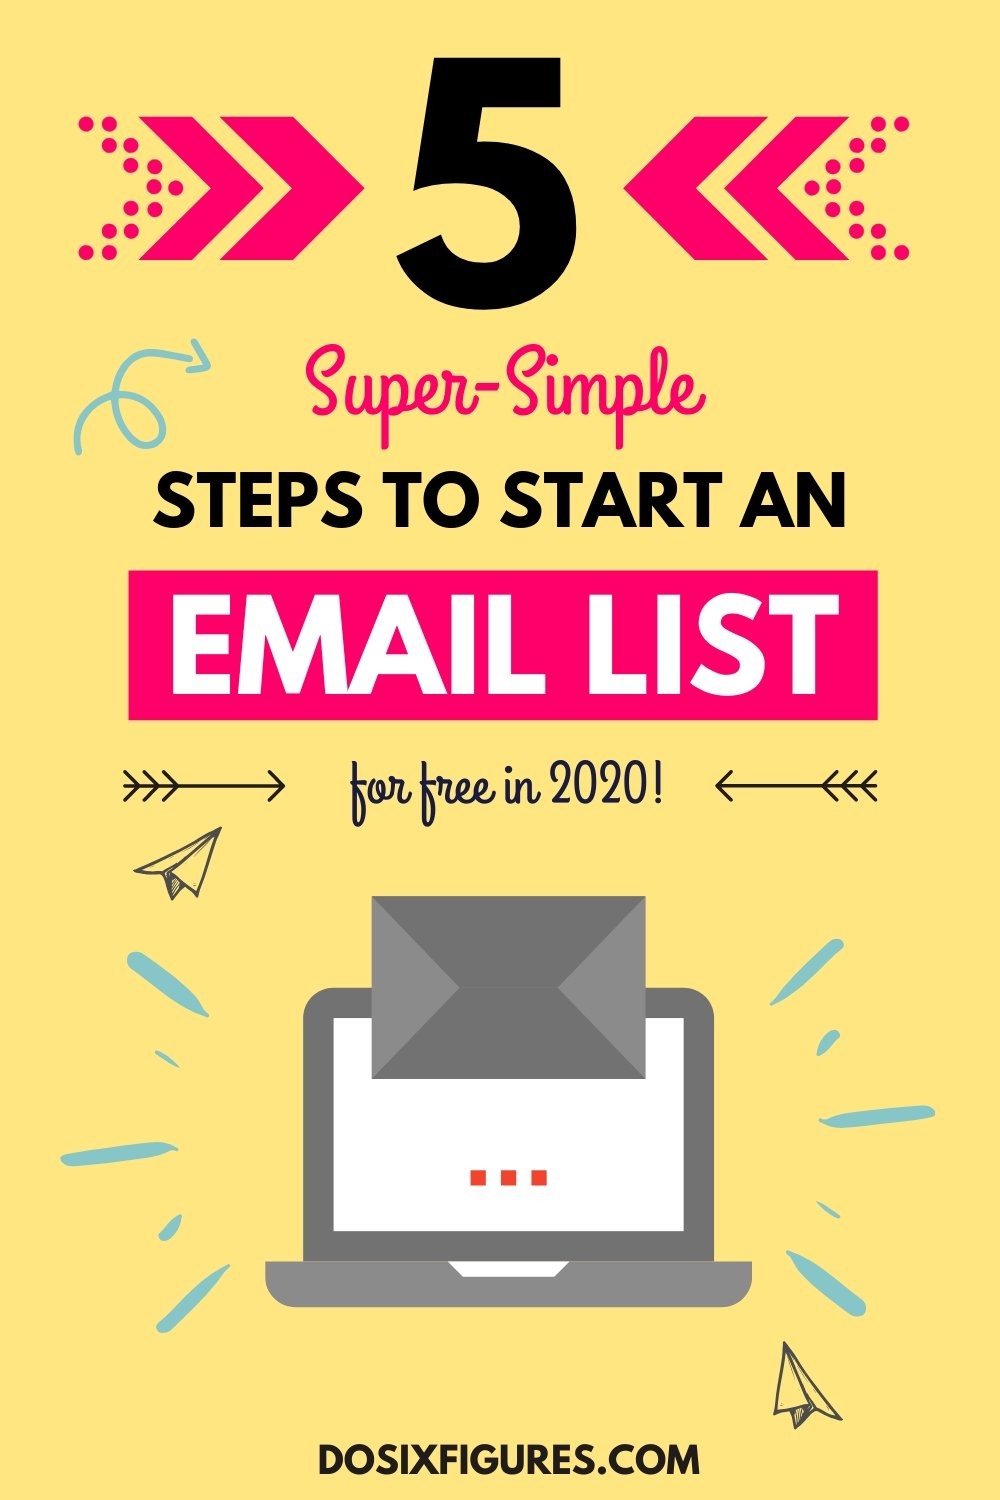 5 simple steps for starting an email list